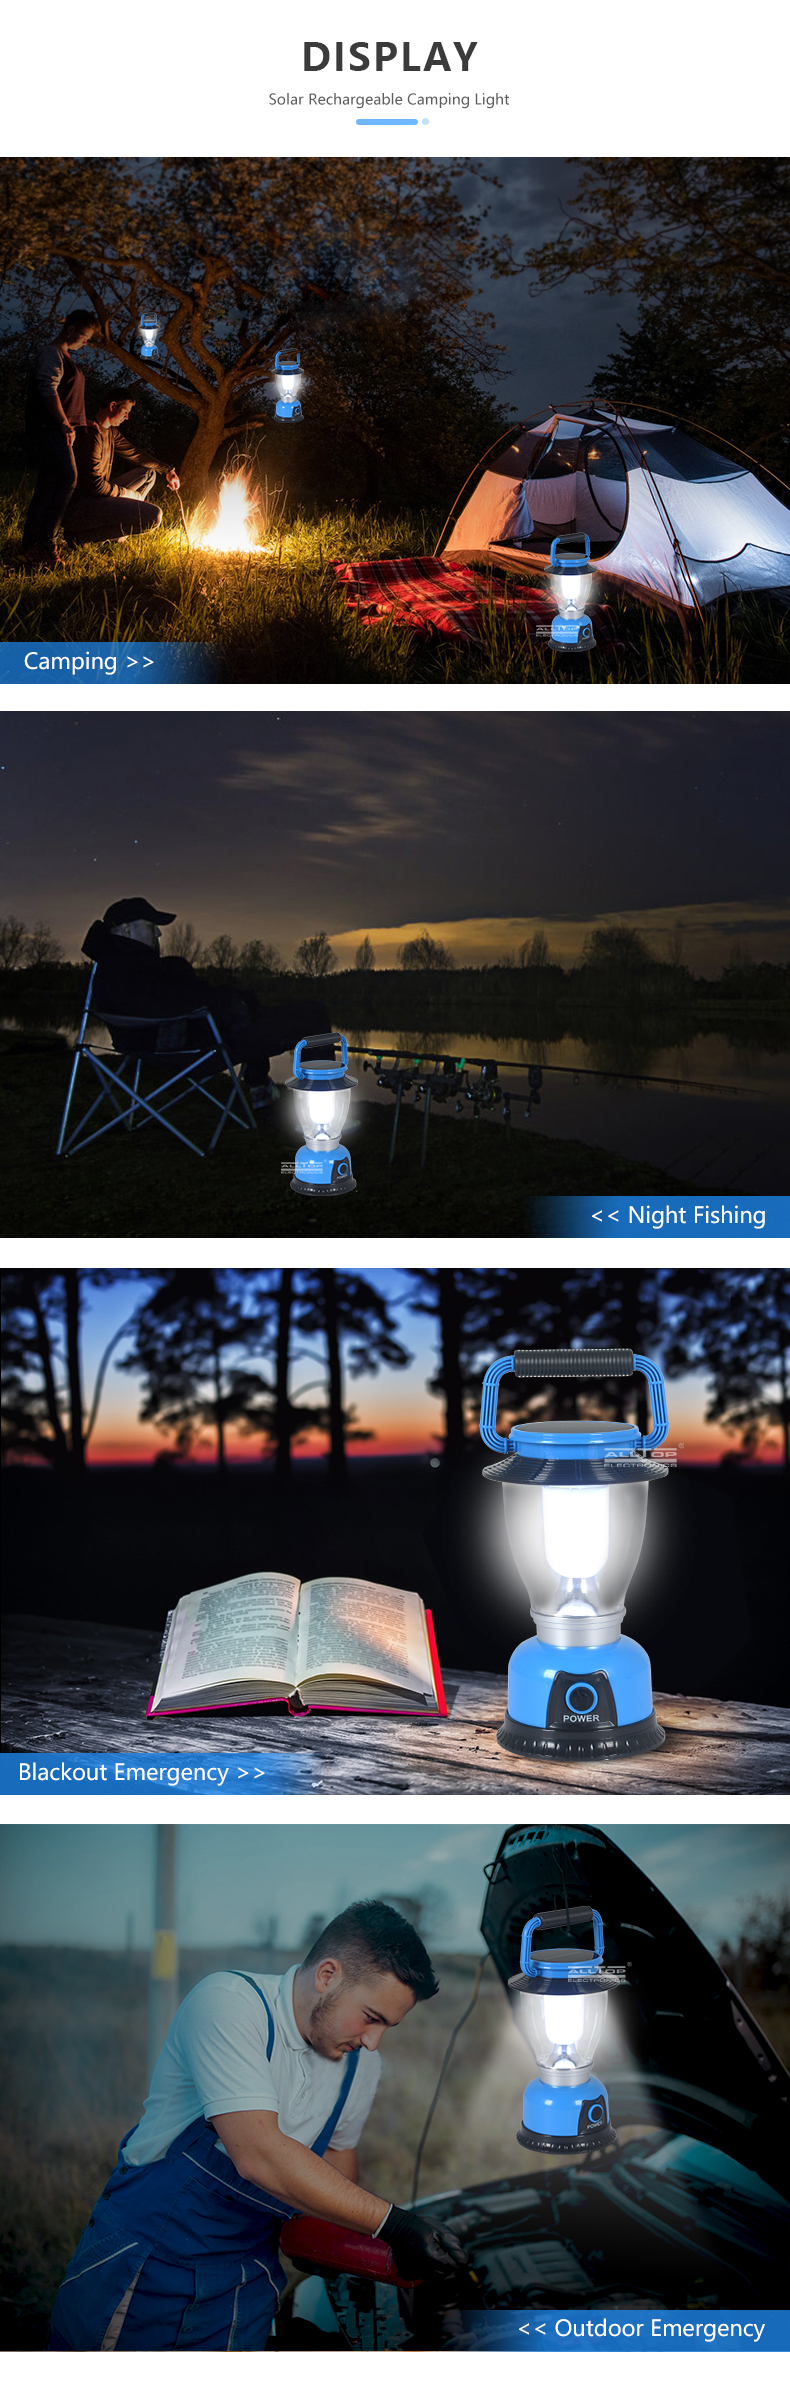 ALLTOP Camping Light Defensa Personal Led Lantern Portable Led Solar Energy System Camping Light